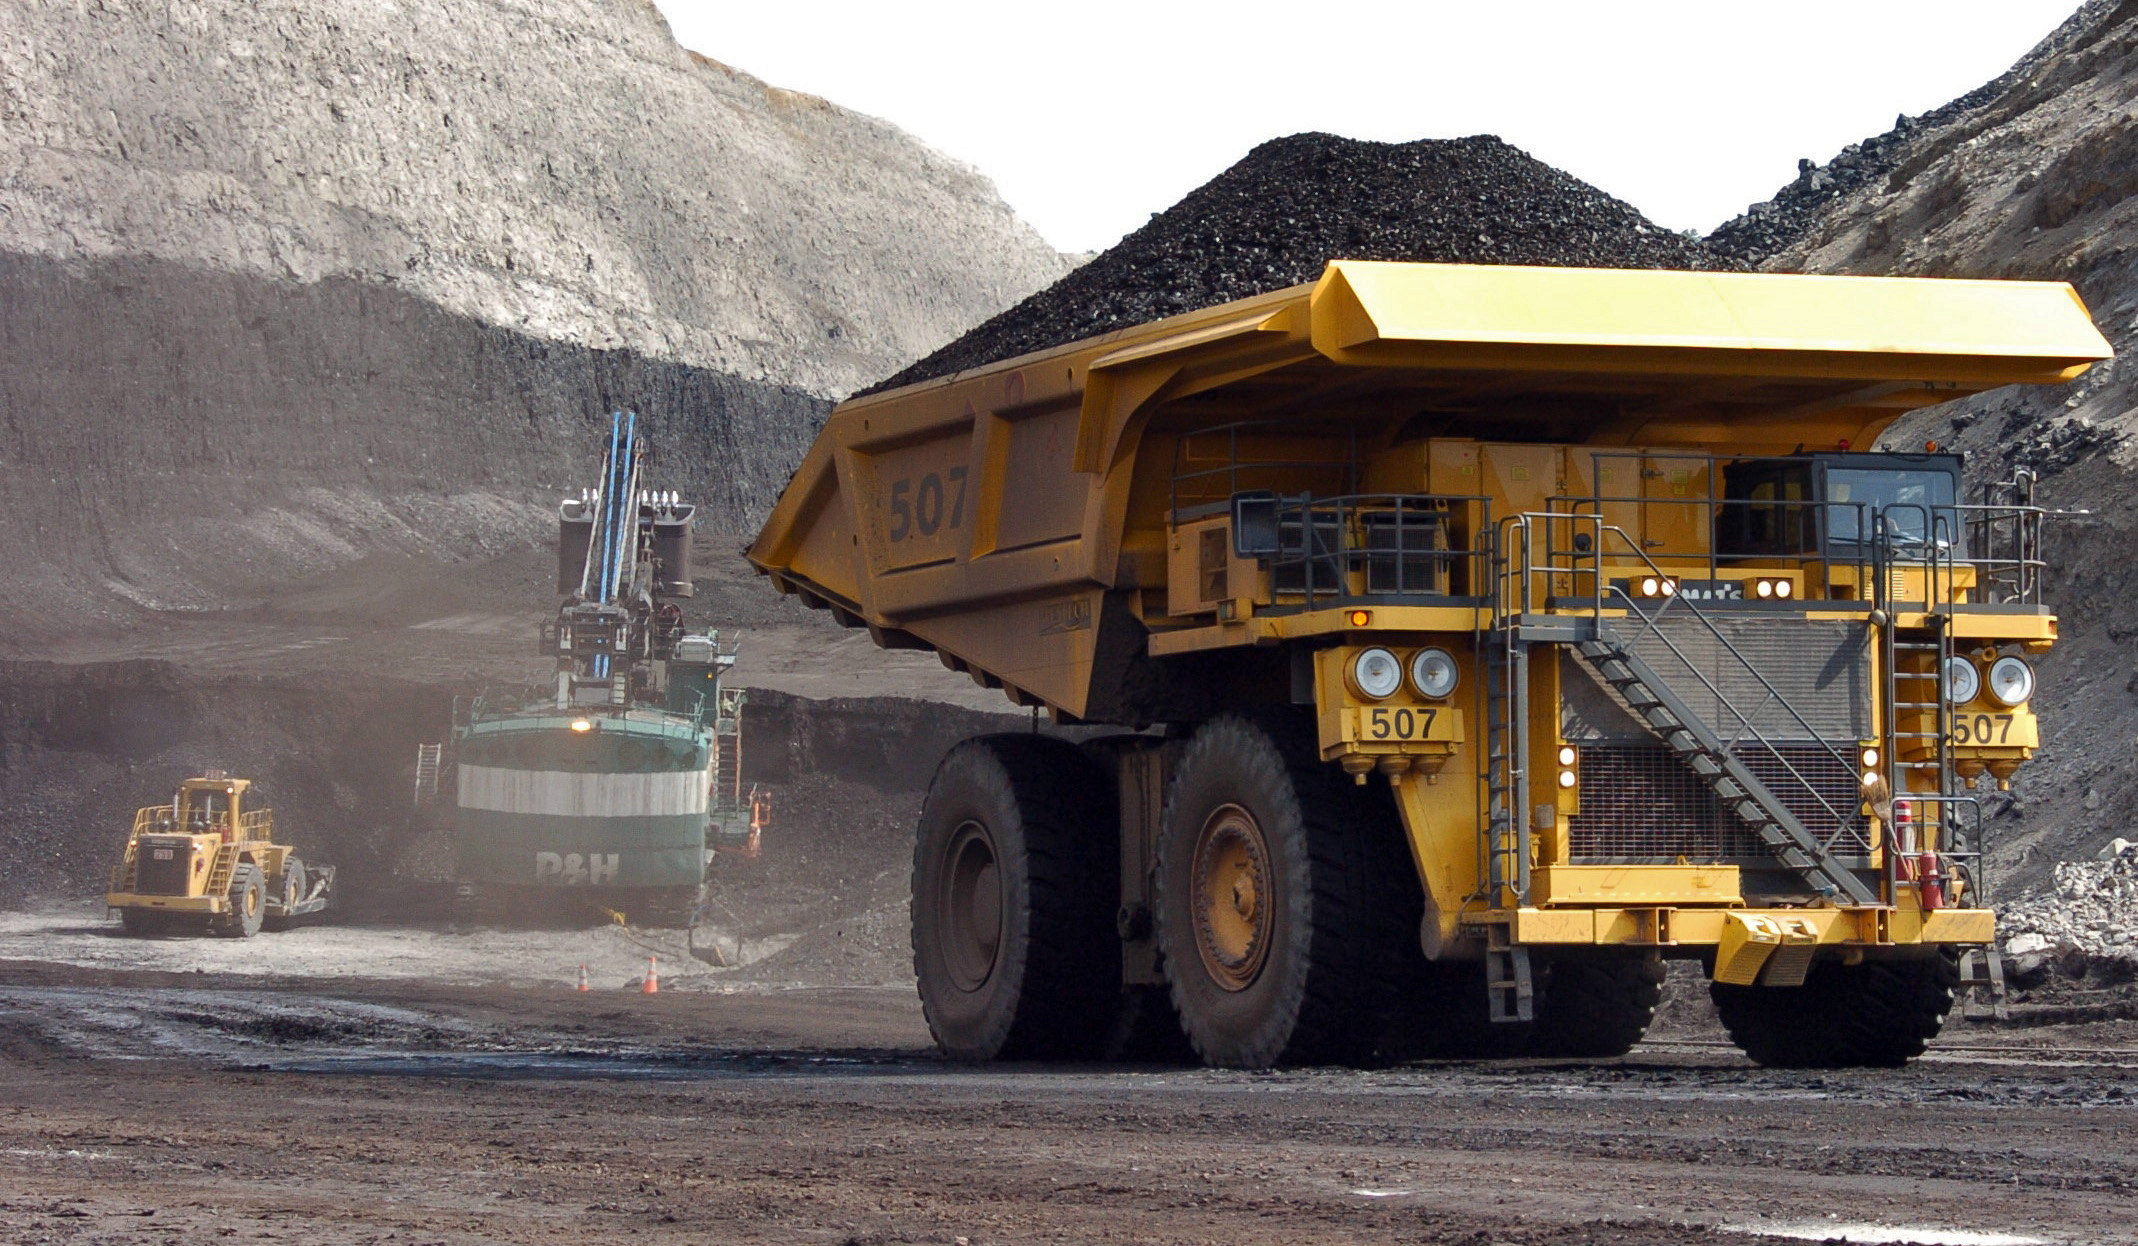 <p>In this April 2013 photo, a truck carrying 250 tons of coal hauls the fuel to the surface of the Cloud Peak Energy's Spring Creek mine near Decker, Mont. The mine is located on public land. </p>